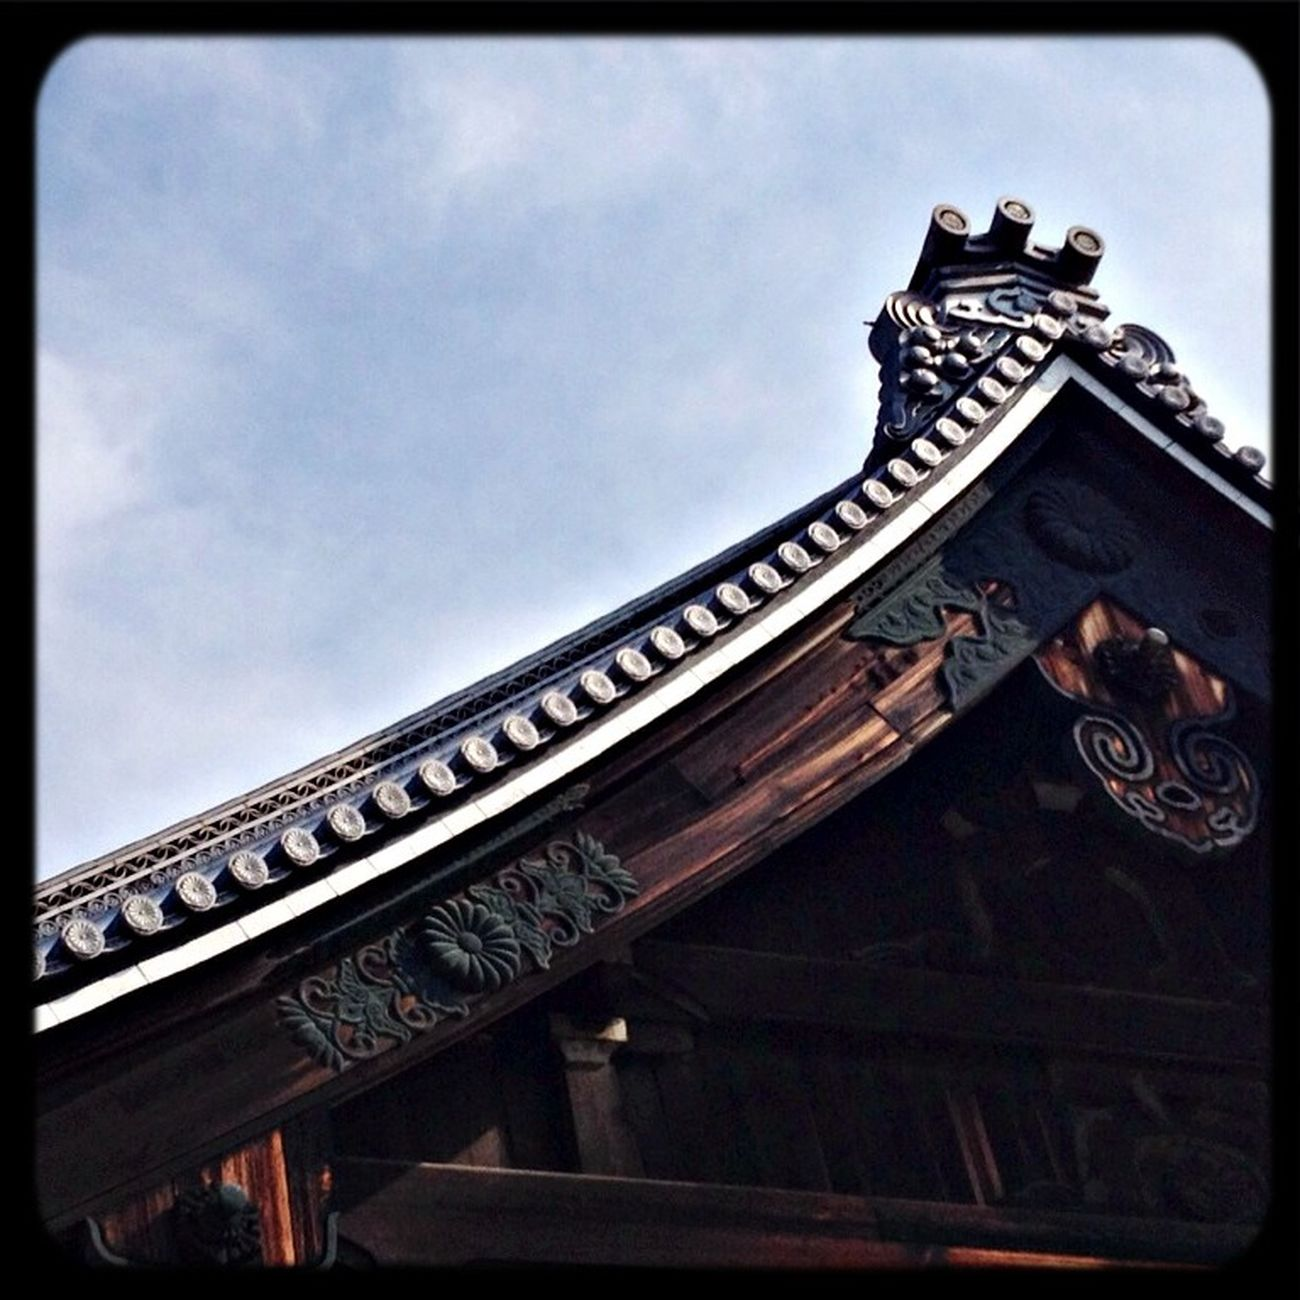 清浄華院 大殿・屋根と装飾 The Purist (no Edit, No Filter) Taking Photos Temple Roof